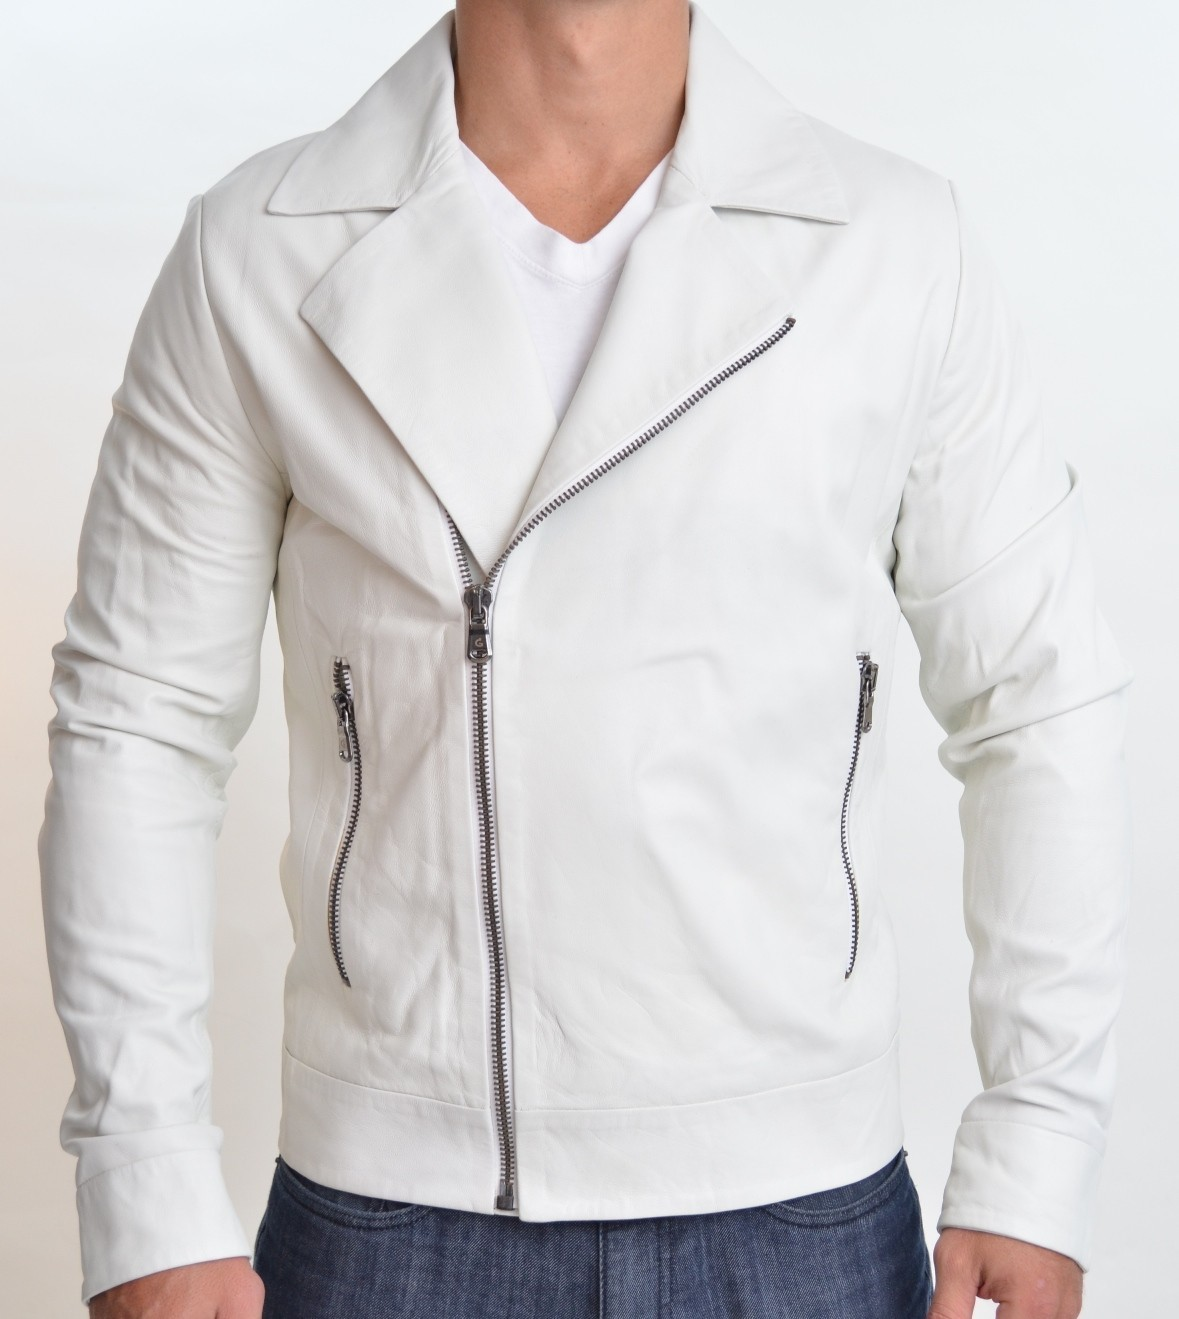 Shop men's white jackets from DICK'S Sporting Goods today. If you find a lower price on men's white jackets somewhere else, we'll match it with our Best Price Guarantee! Check out customer reviews on men's white jackets and save big on a variety of products. Plus, ScoreCard members earn points on .